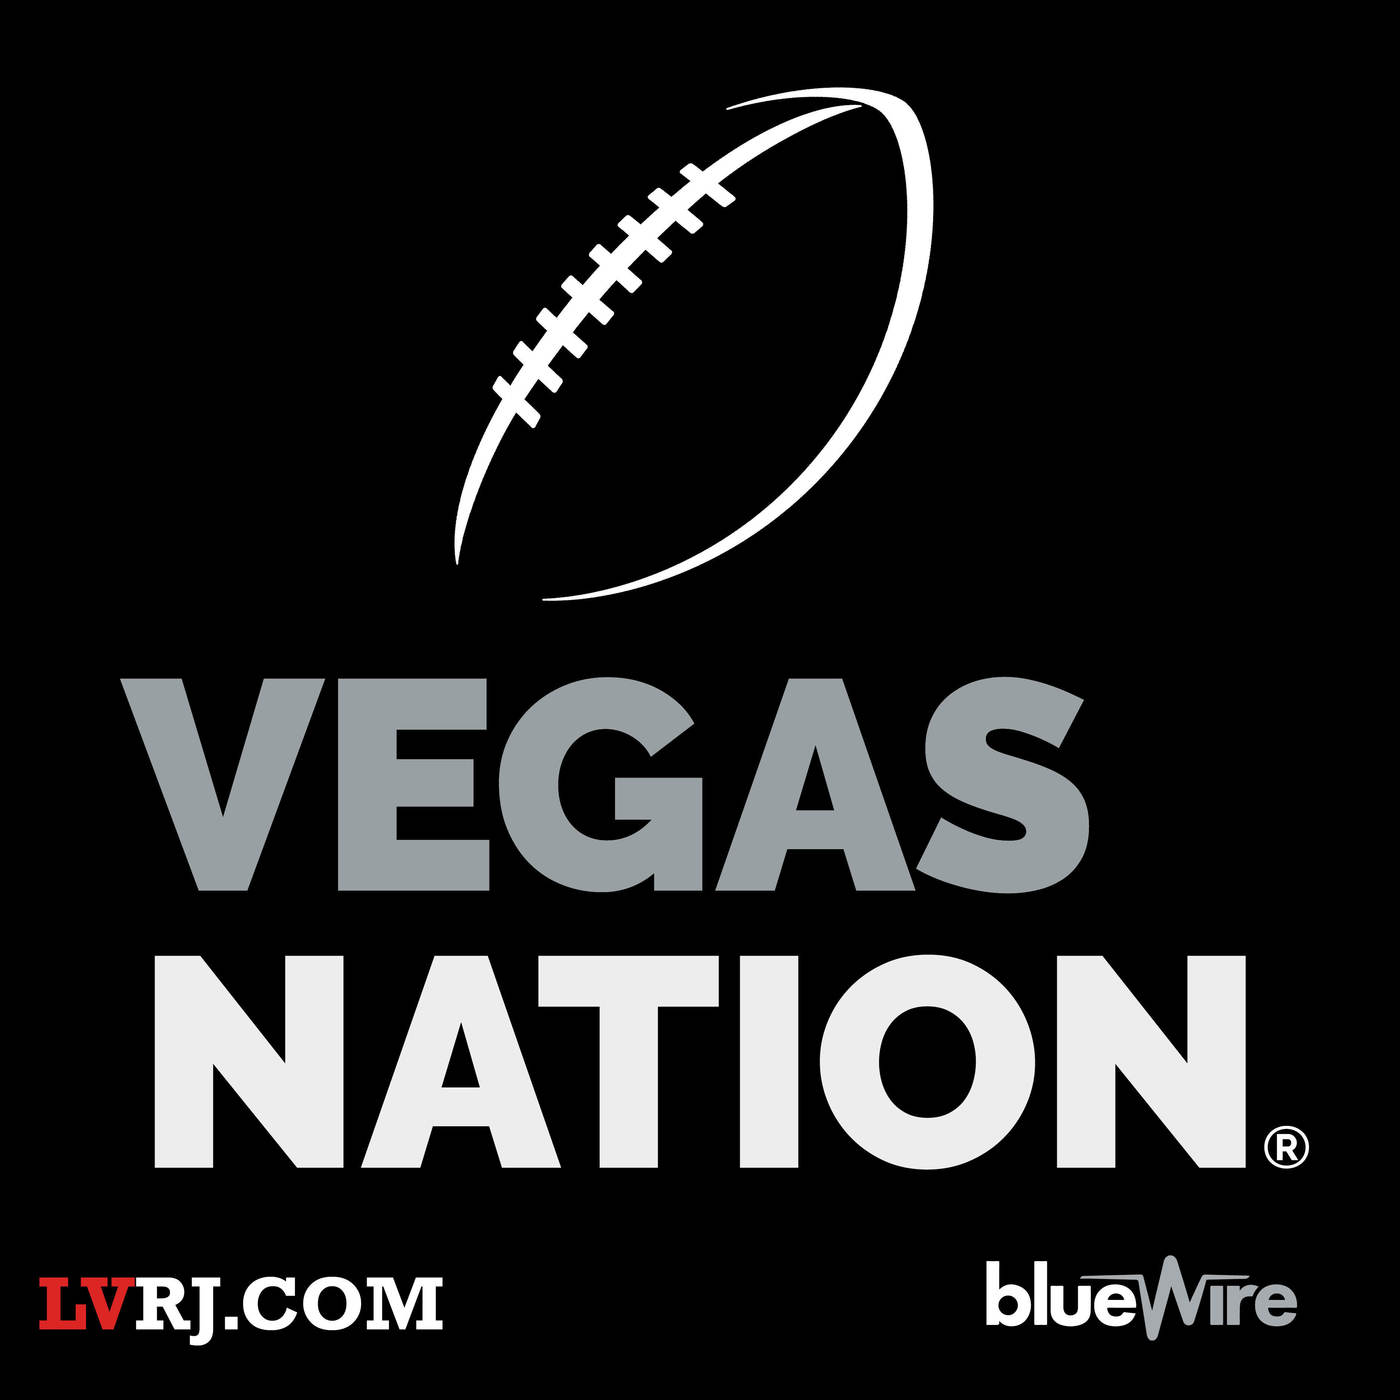 Vegas Nation – Raiders Football